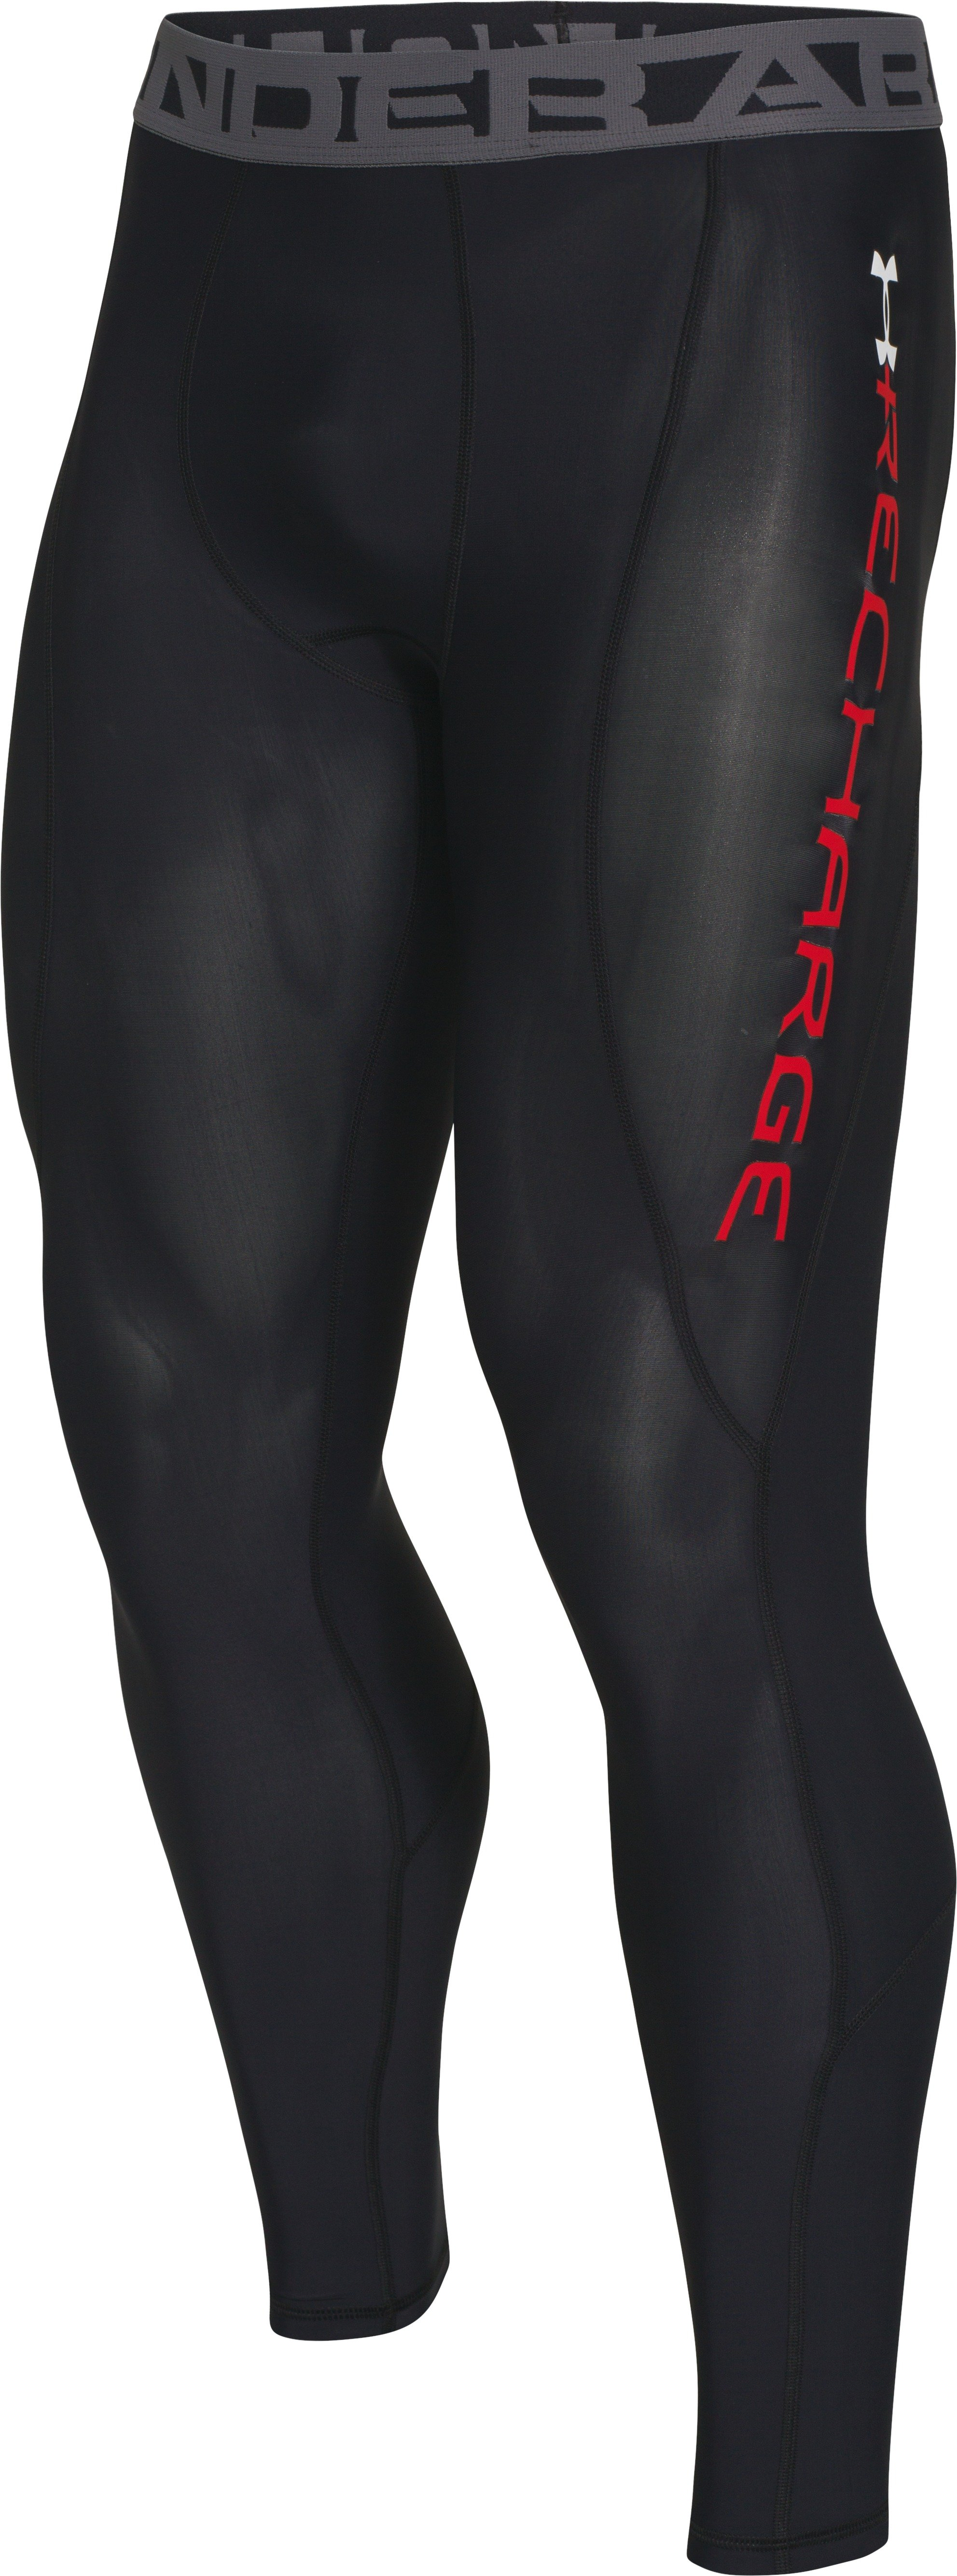 Under Armour Collant Compression UA Recharge Energy M v�tement running homme